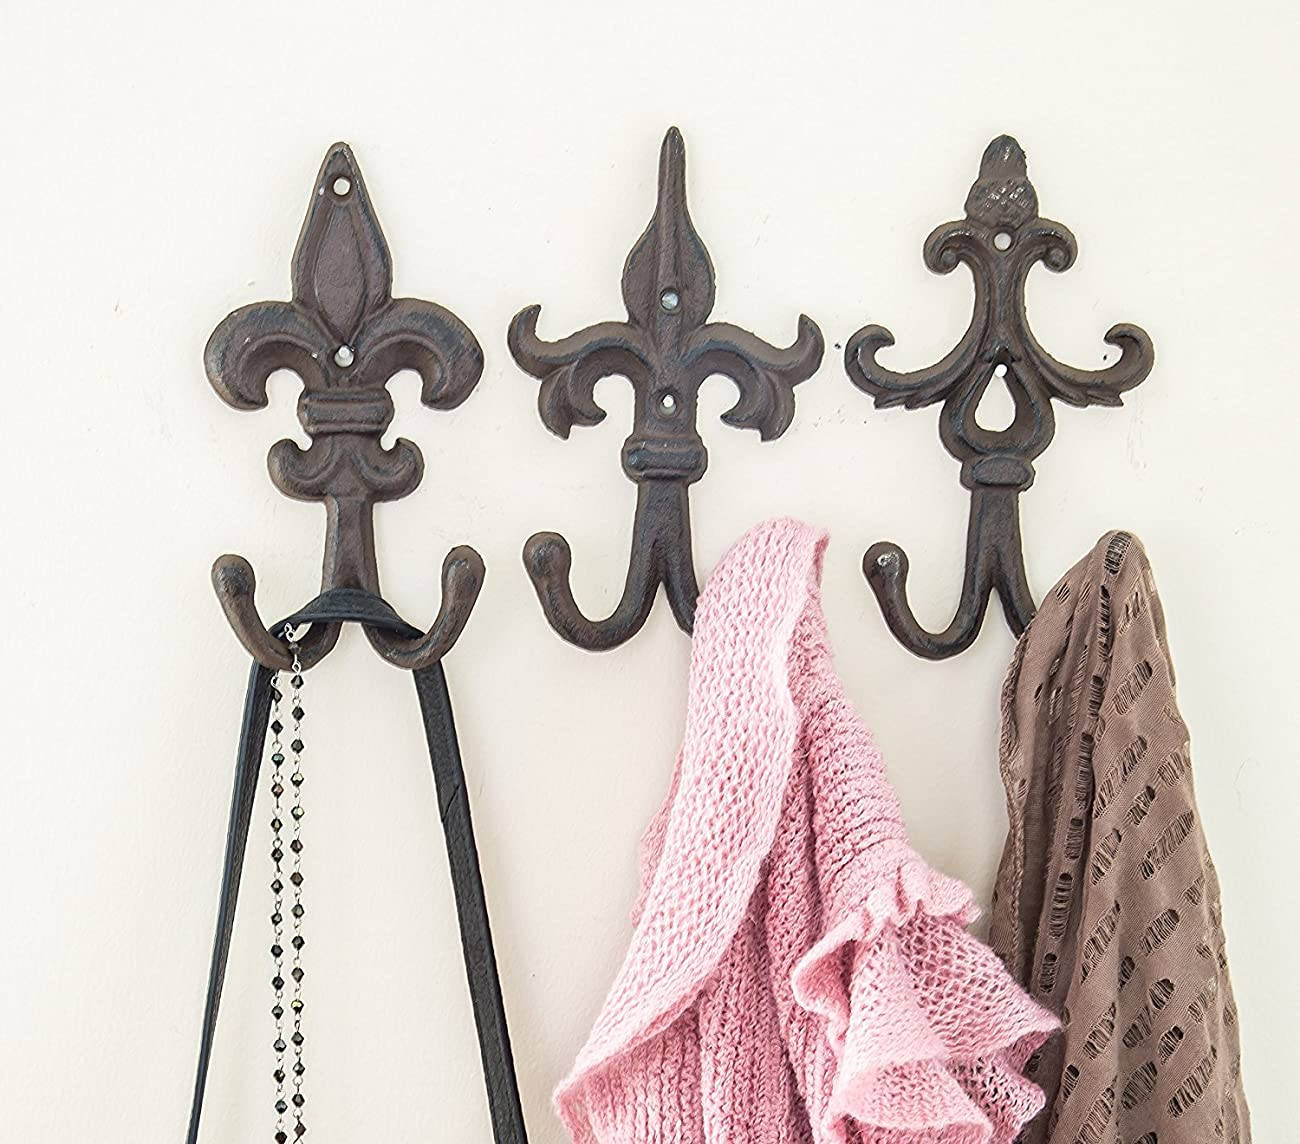 SET OF 3 - Cast Iron Fleur De Lis Double Wall Hooks / Hangers - Decorative Wall Mounted Coat Hook - Rustic Cast Iron - With Screws And Anchors by Comfify CA-1504-30-BR 0